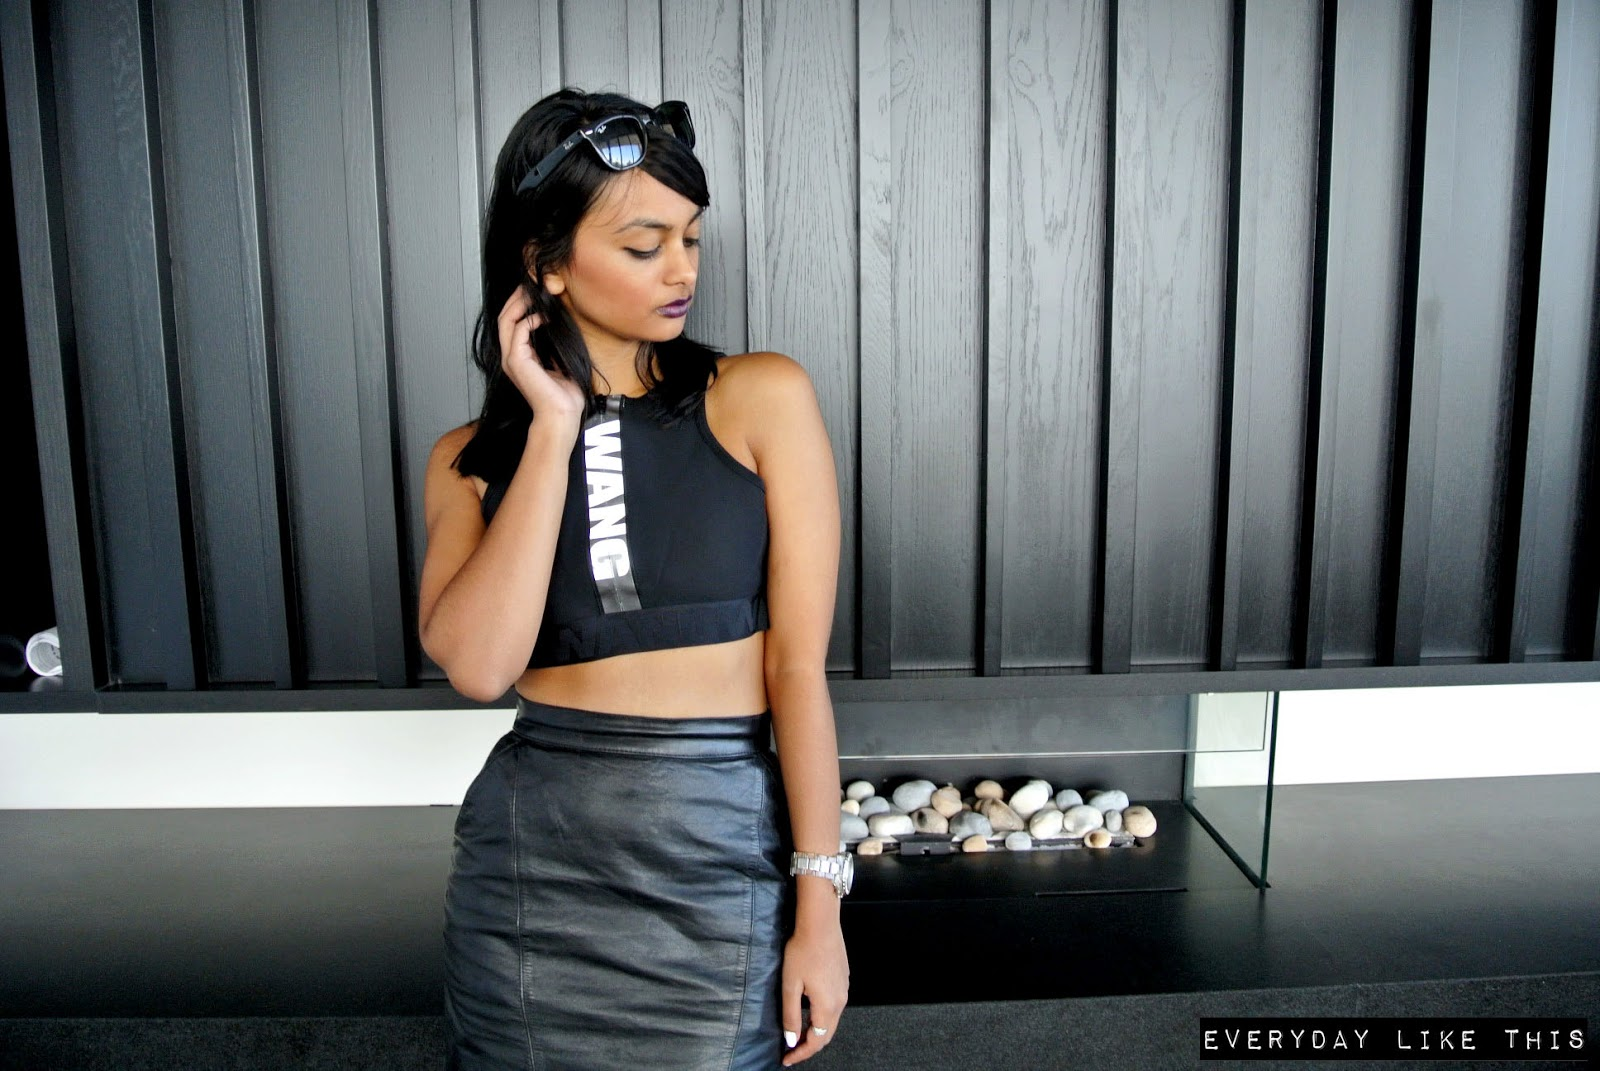 alexander wang h&m fashion blogger cropped tops ebay sale style everyday like this melbourne gpo